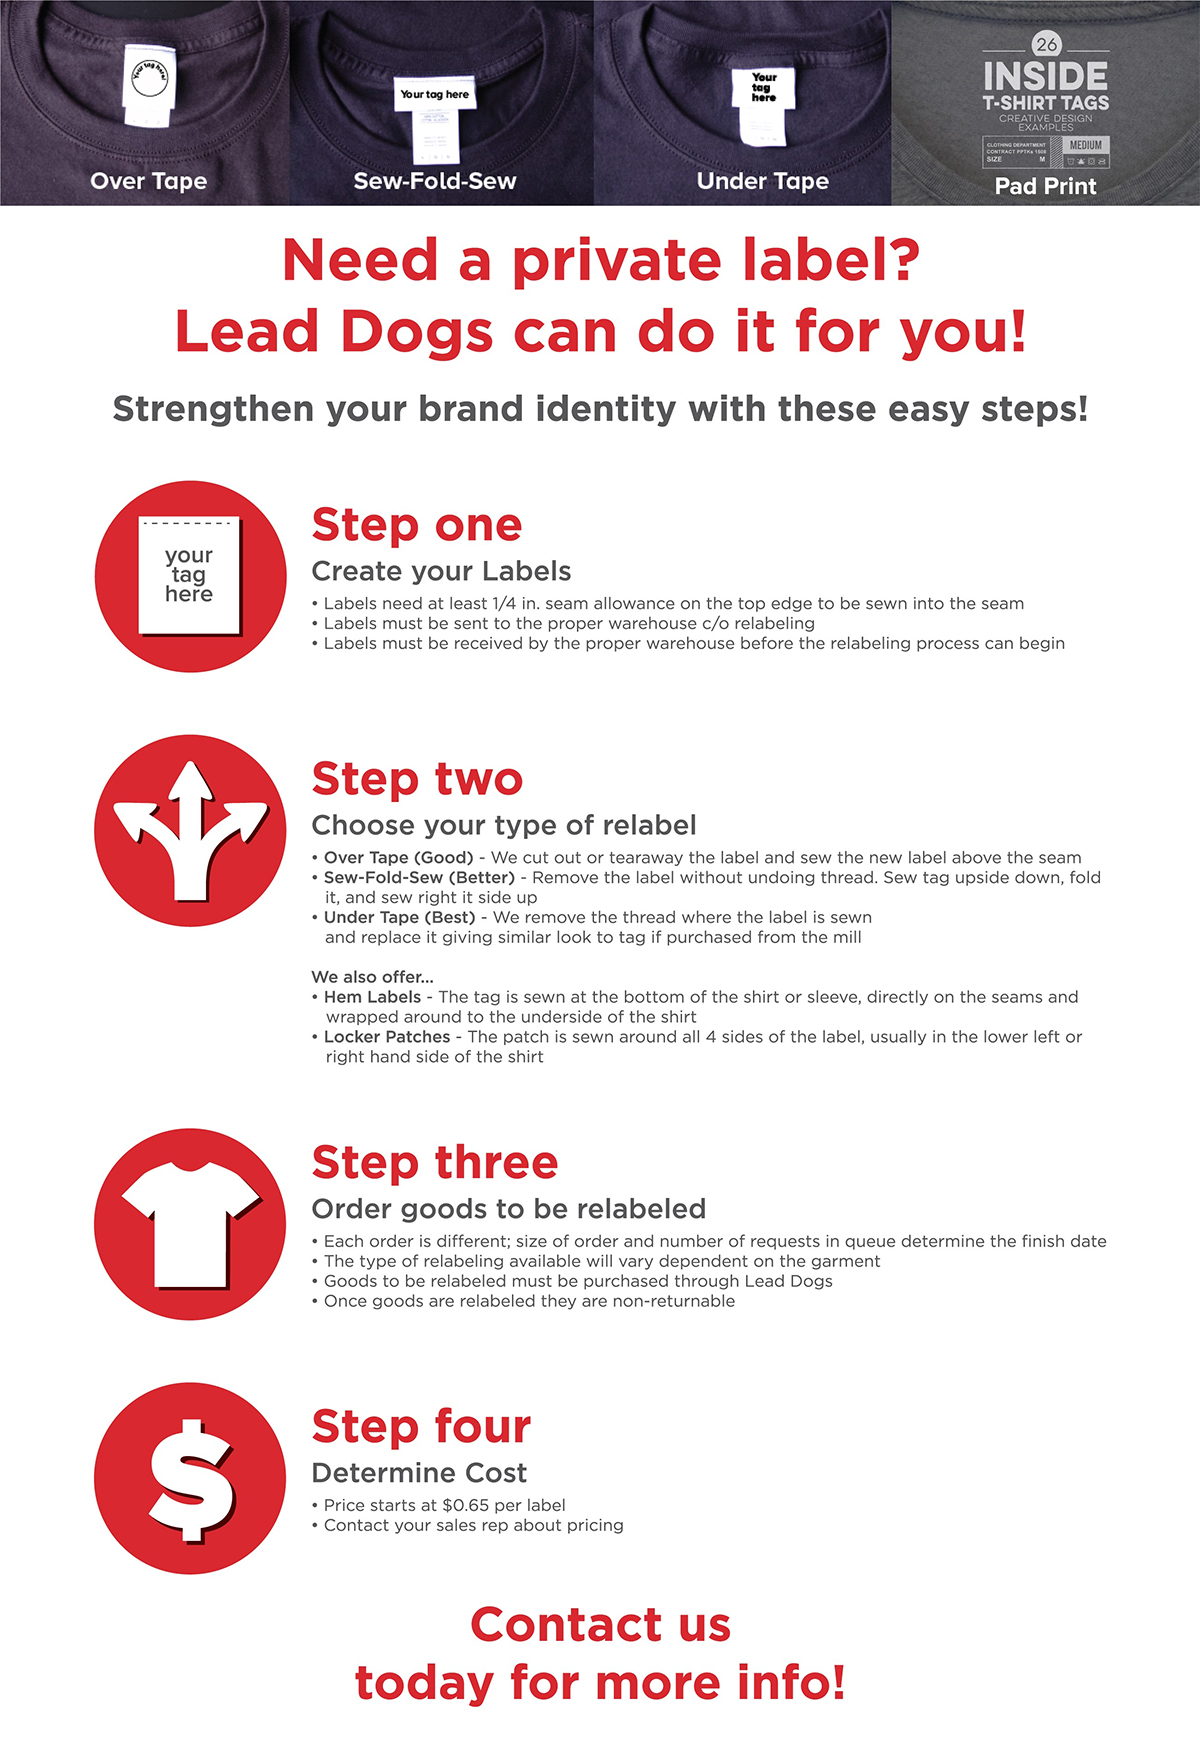 Our Services - Lead Dogs